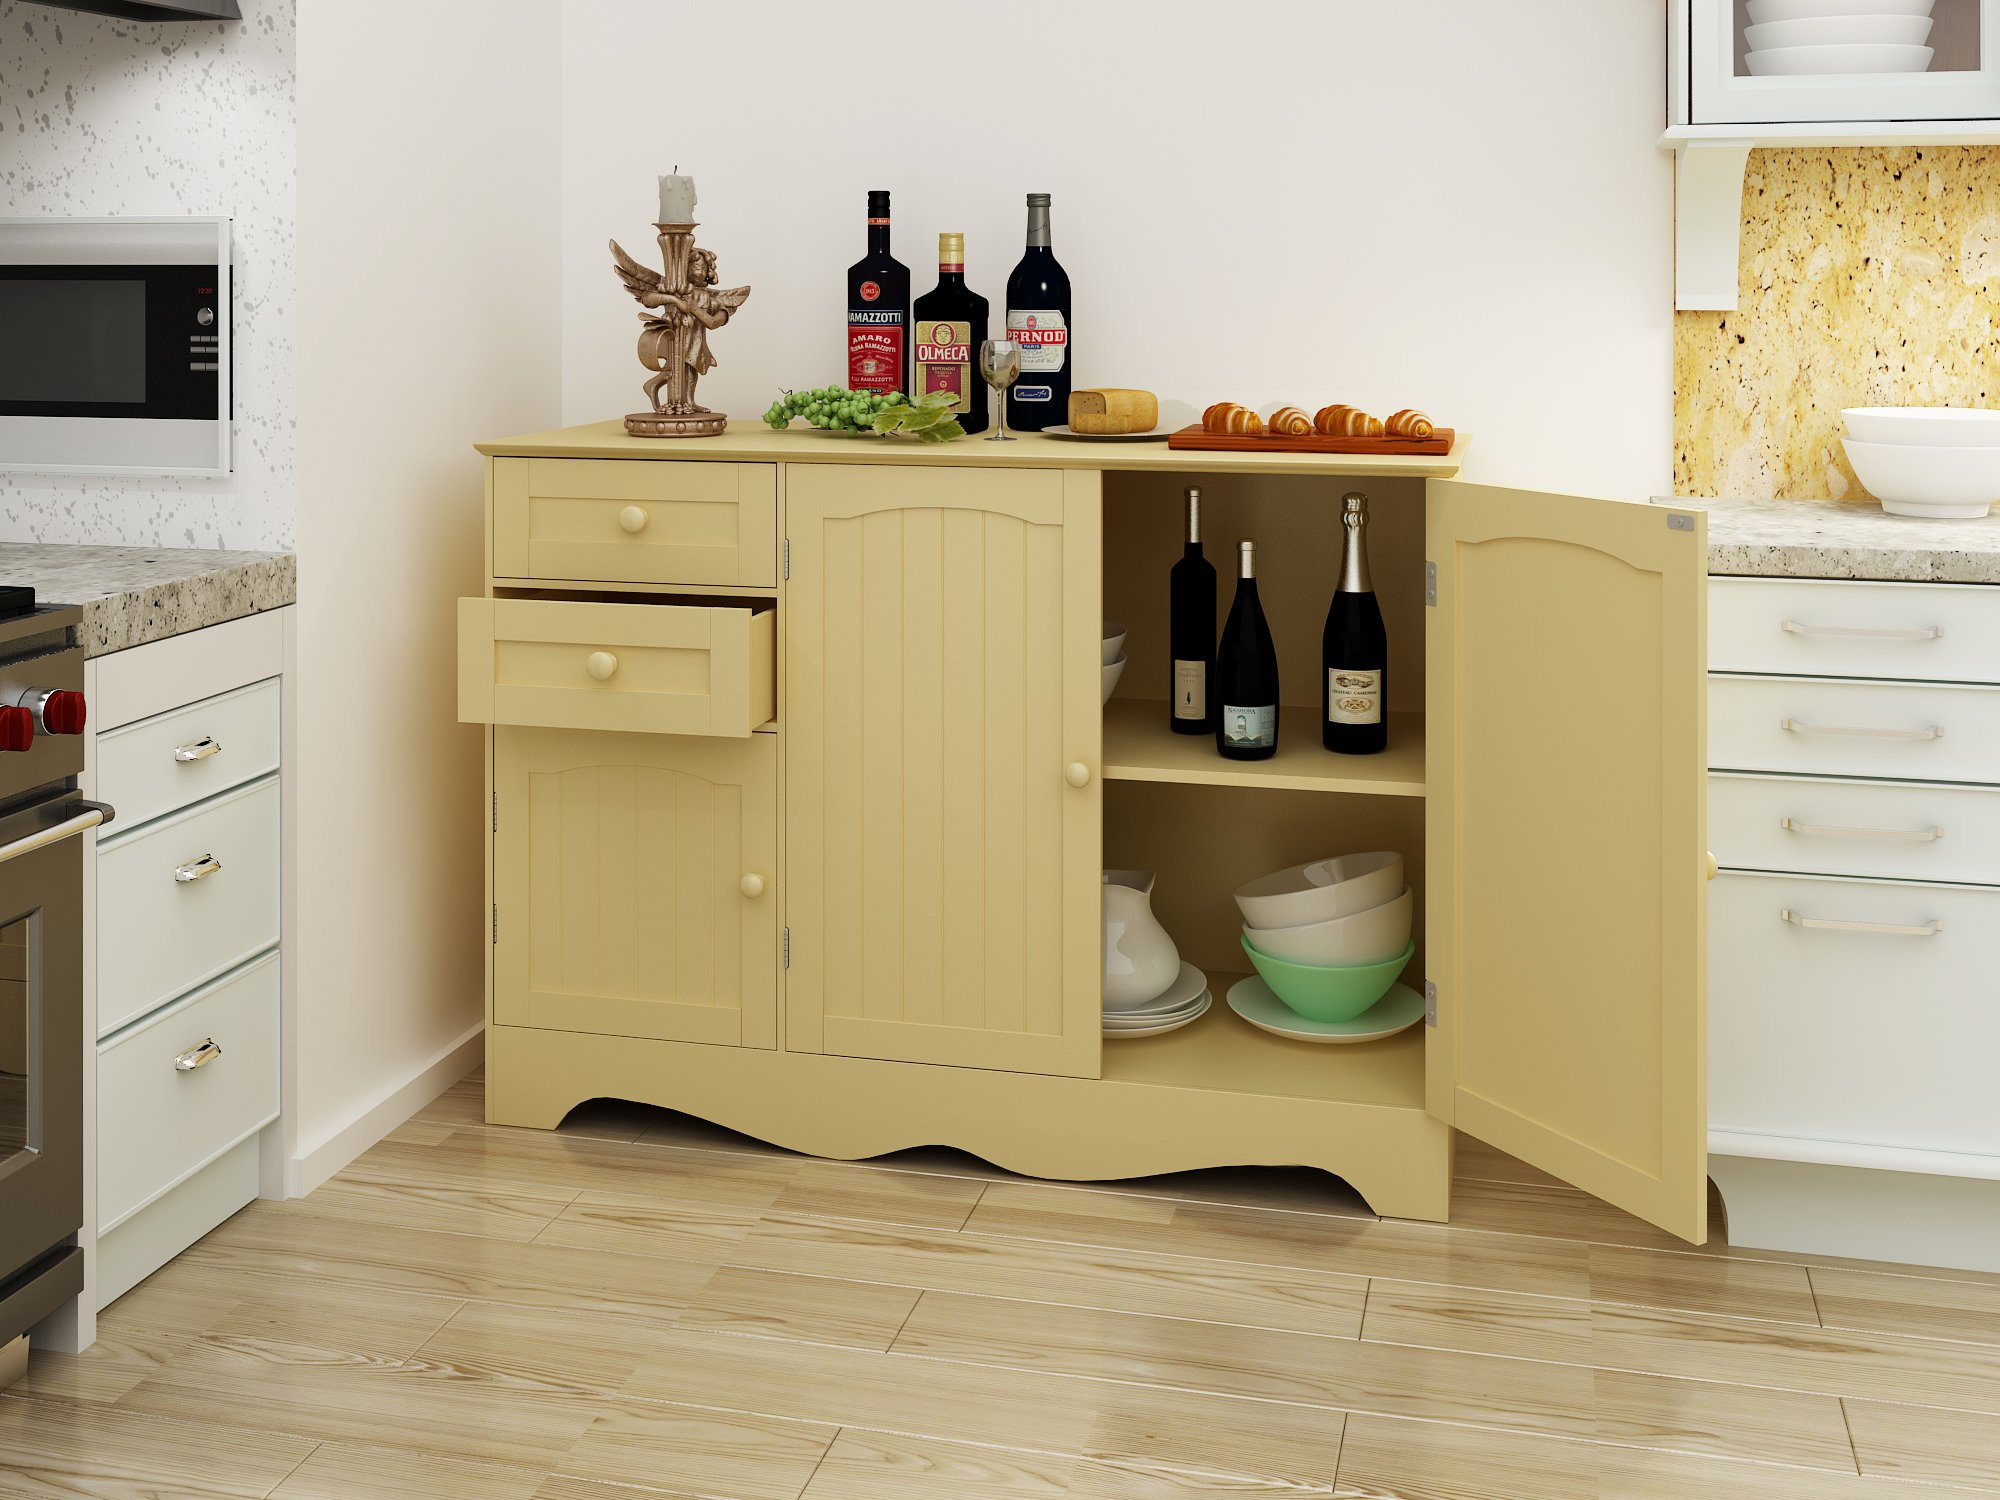 Get Quotations Mulsh Wood Storage Cabinet Kitchen Buffet Unit Dinning Room Furniture With 3 Doors And 2 Drawers